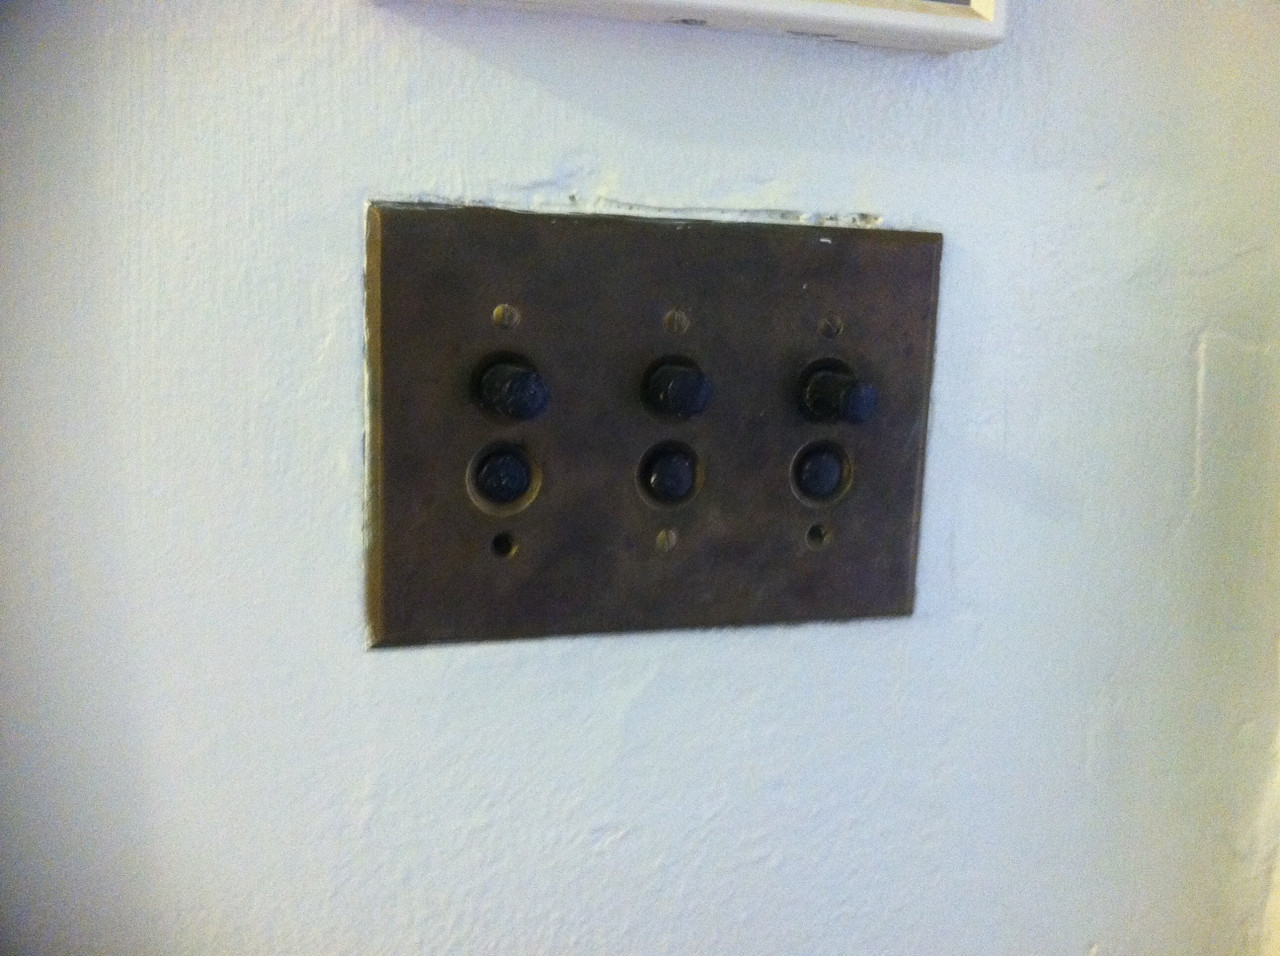 push button light switches--they're pretty cool!  i'd never seen any of these preserved in a house before